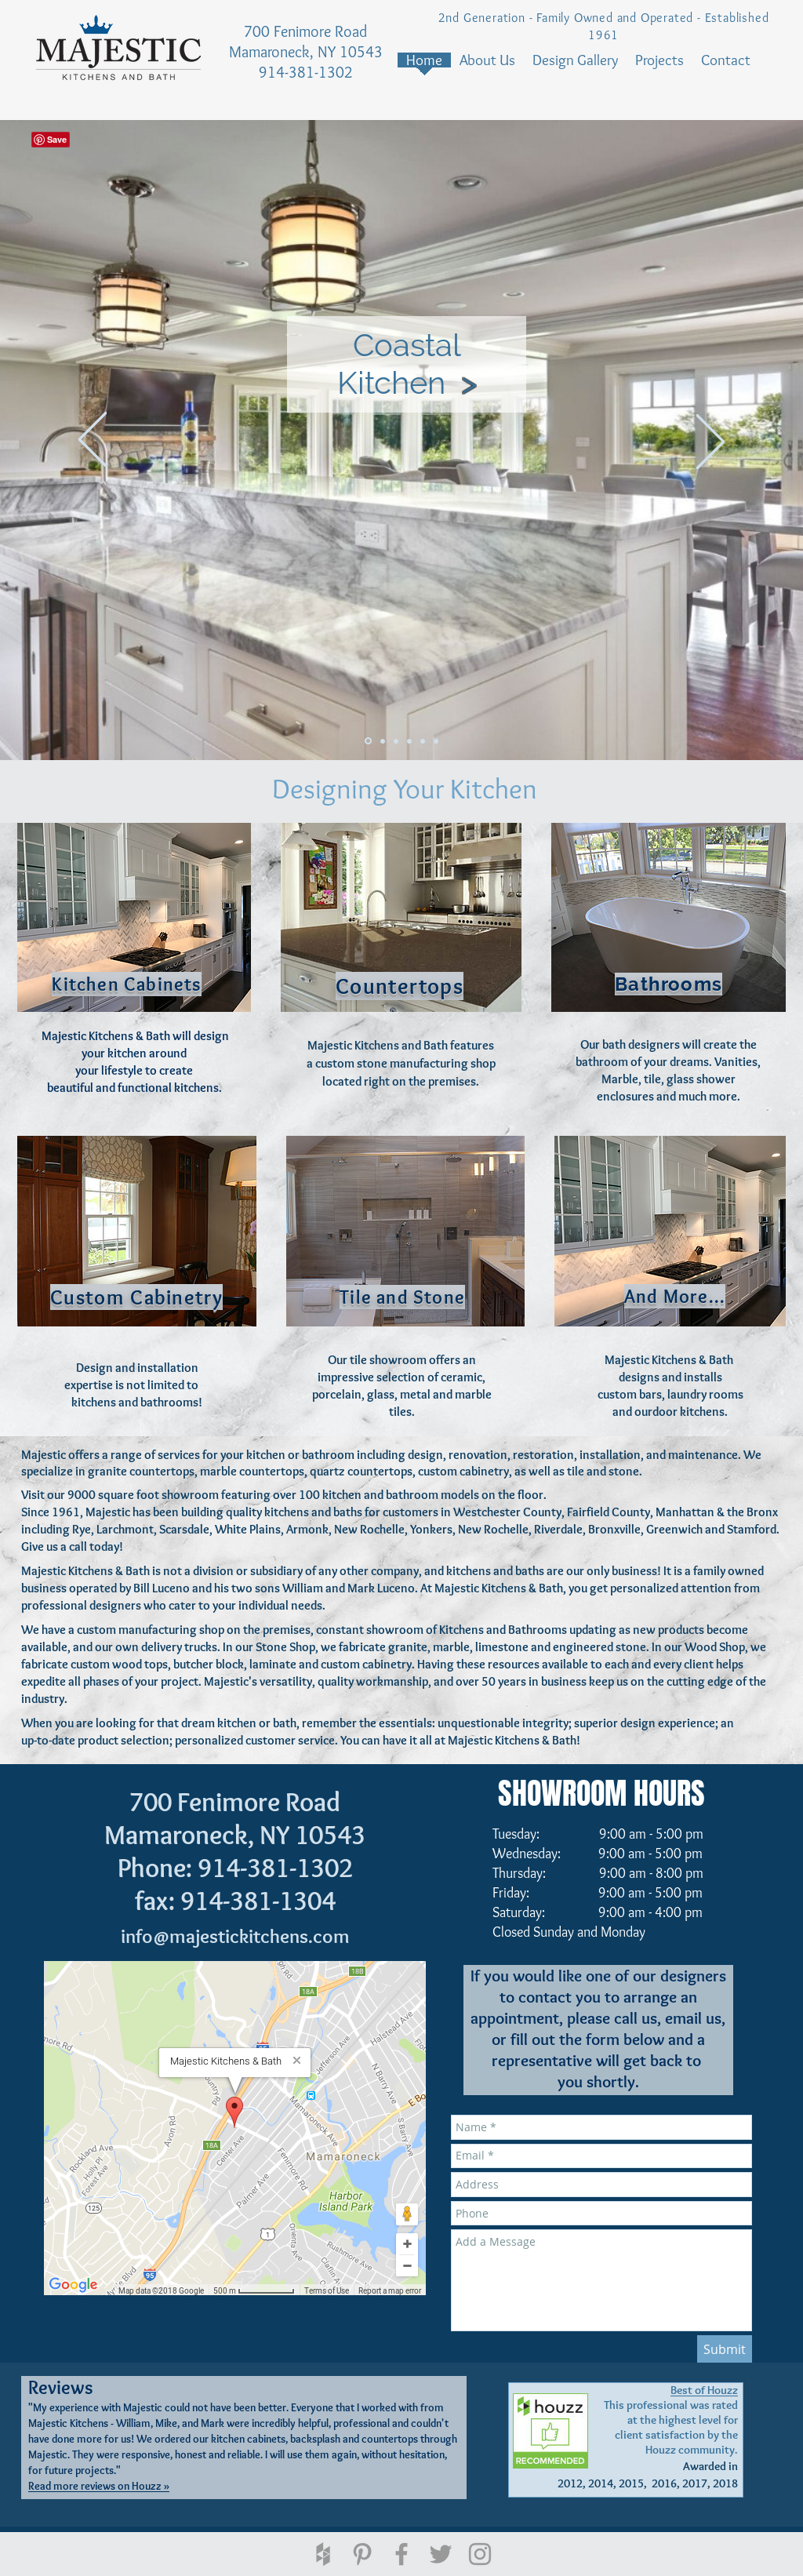 Majestic Kitchens & Bath Competitors, Revenue and Employees - Owler ...